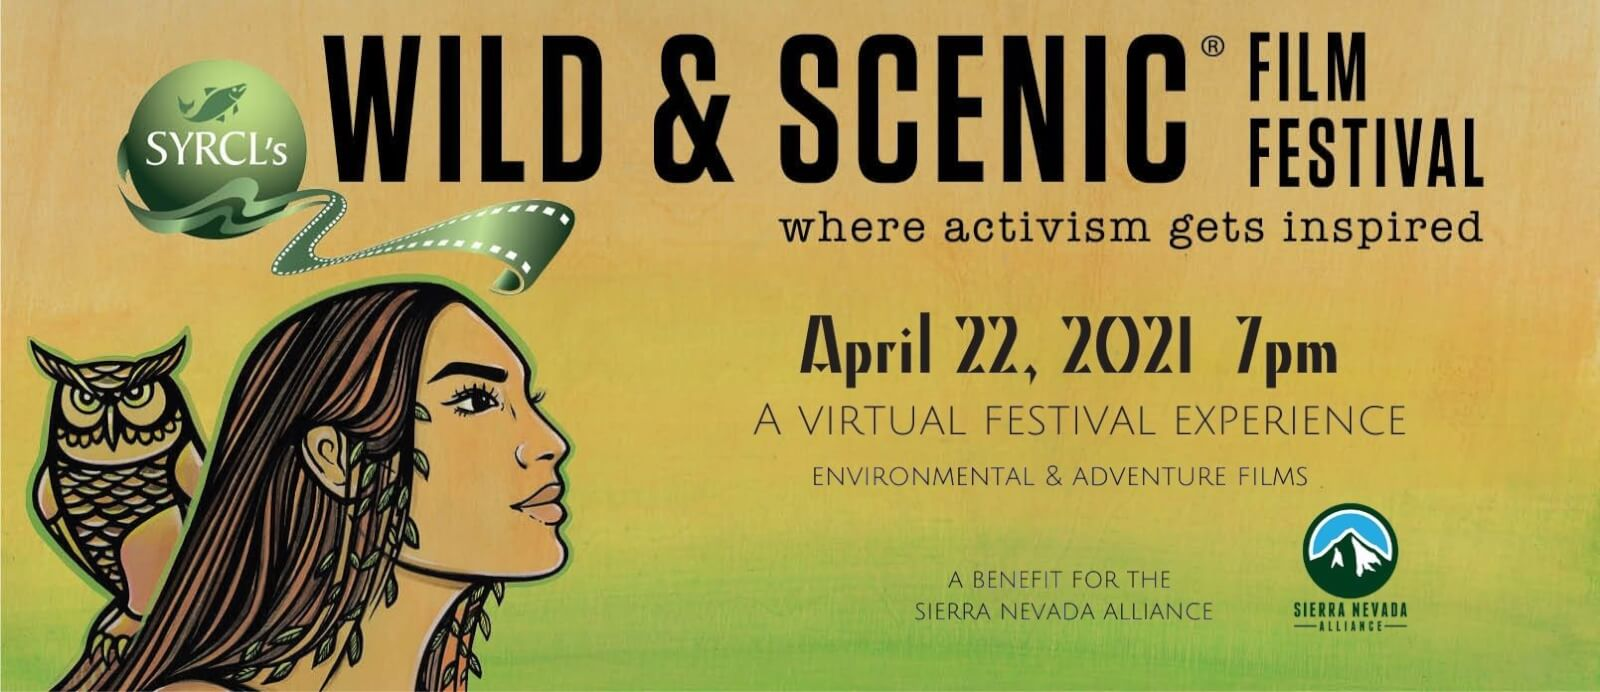 Sierra Nevada Alliance: Wild & Scenic Film Festival [VIRTUAL]